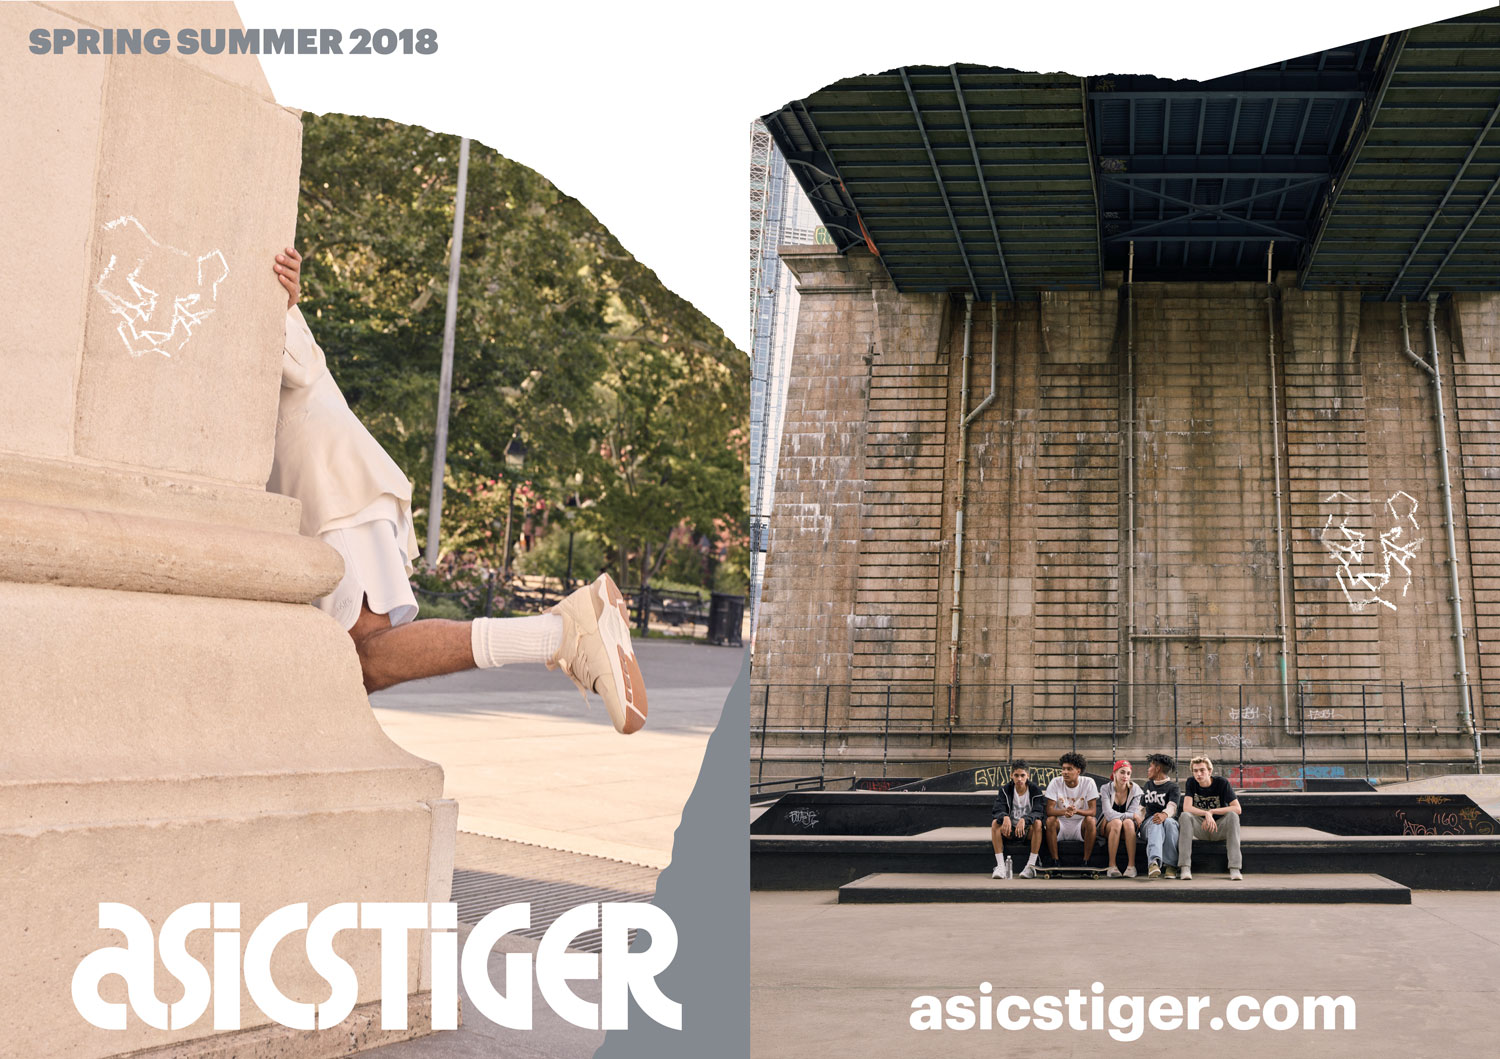 ASICS Tiger Lookbook design